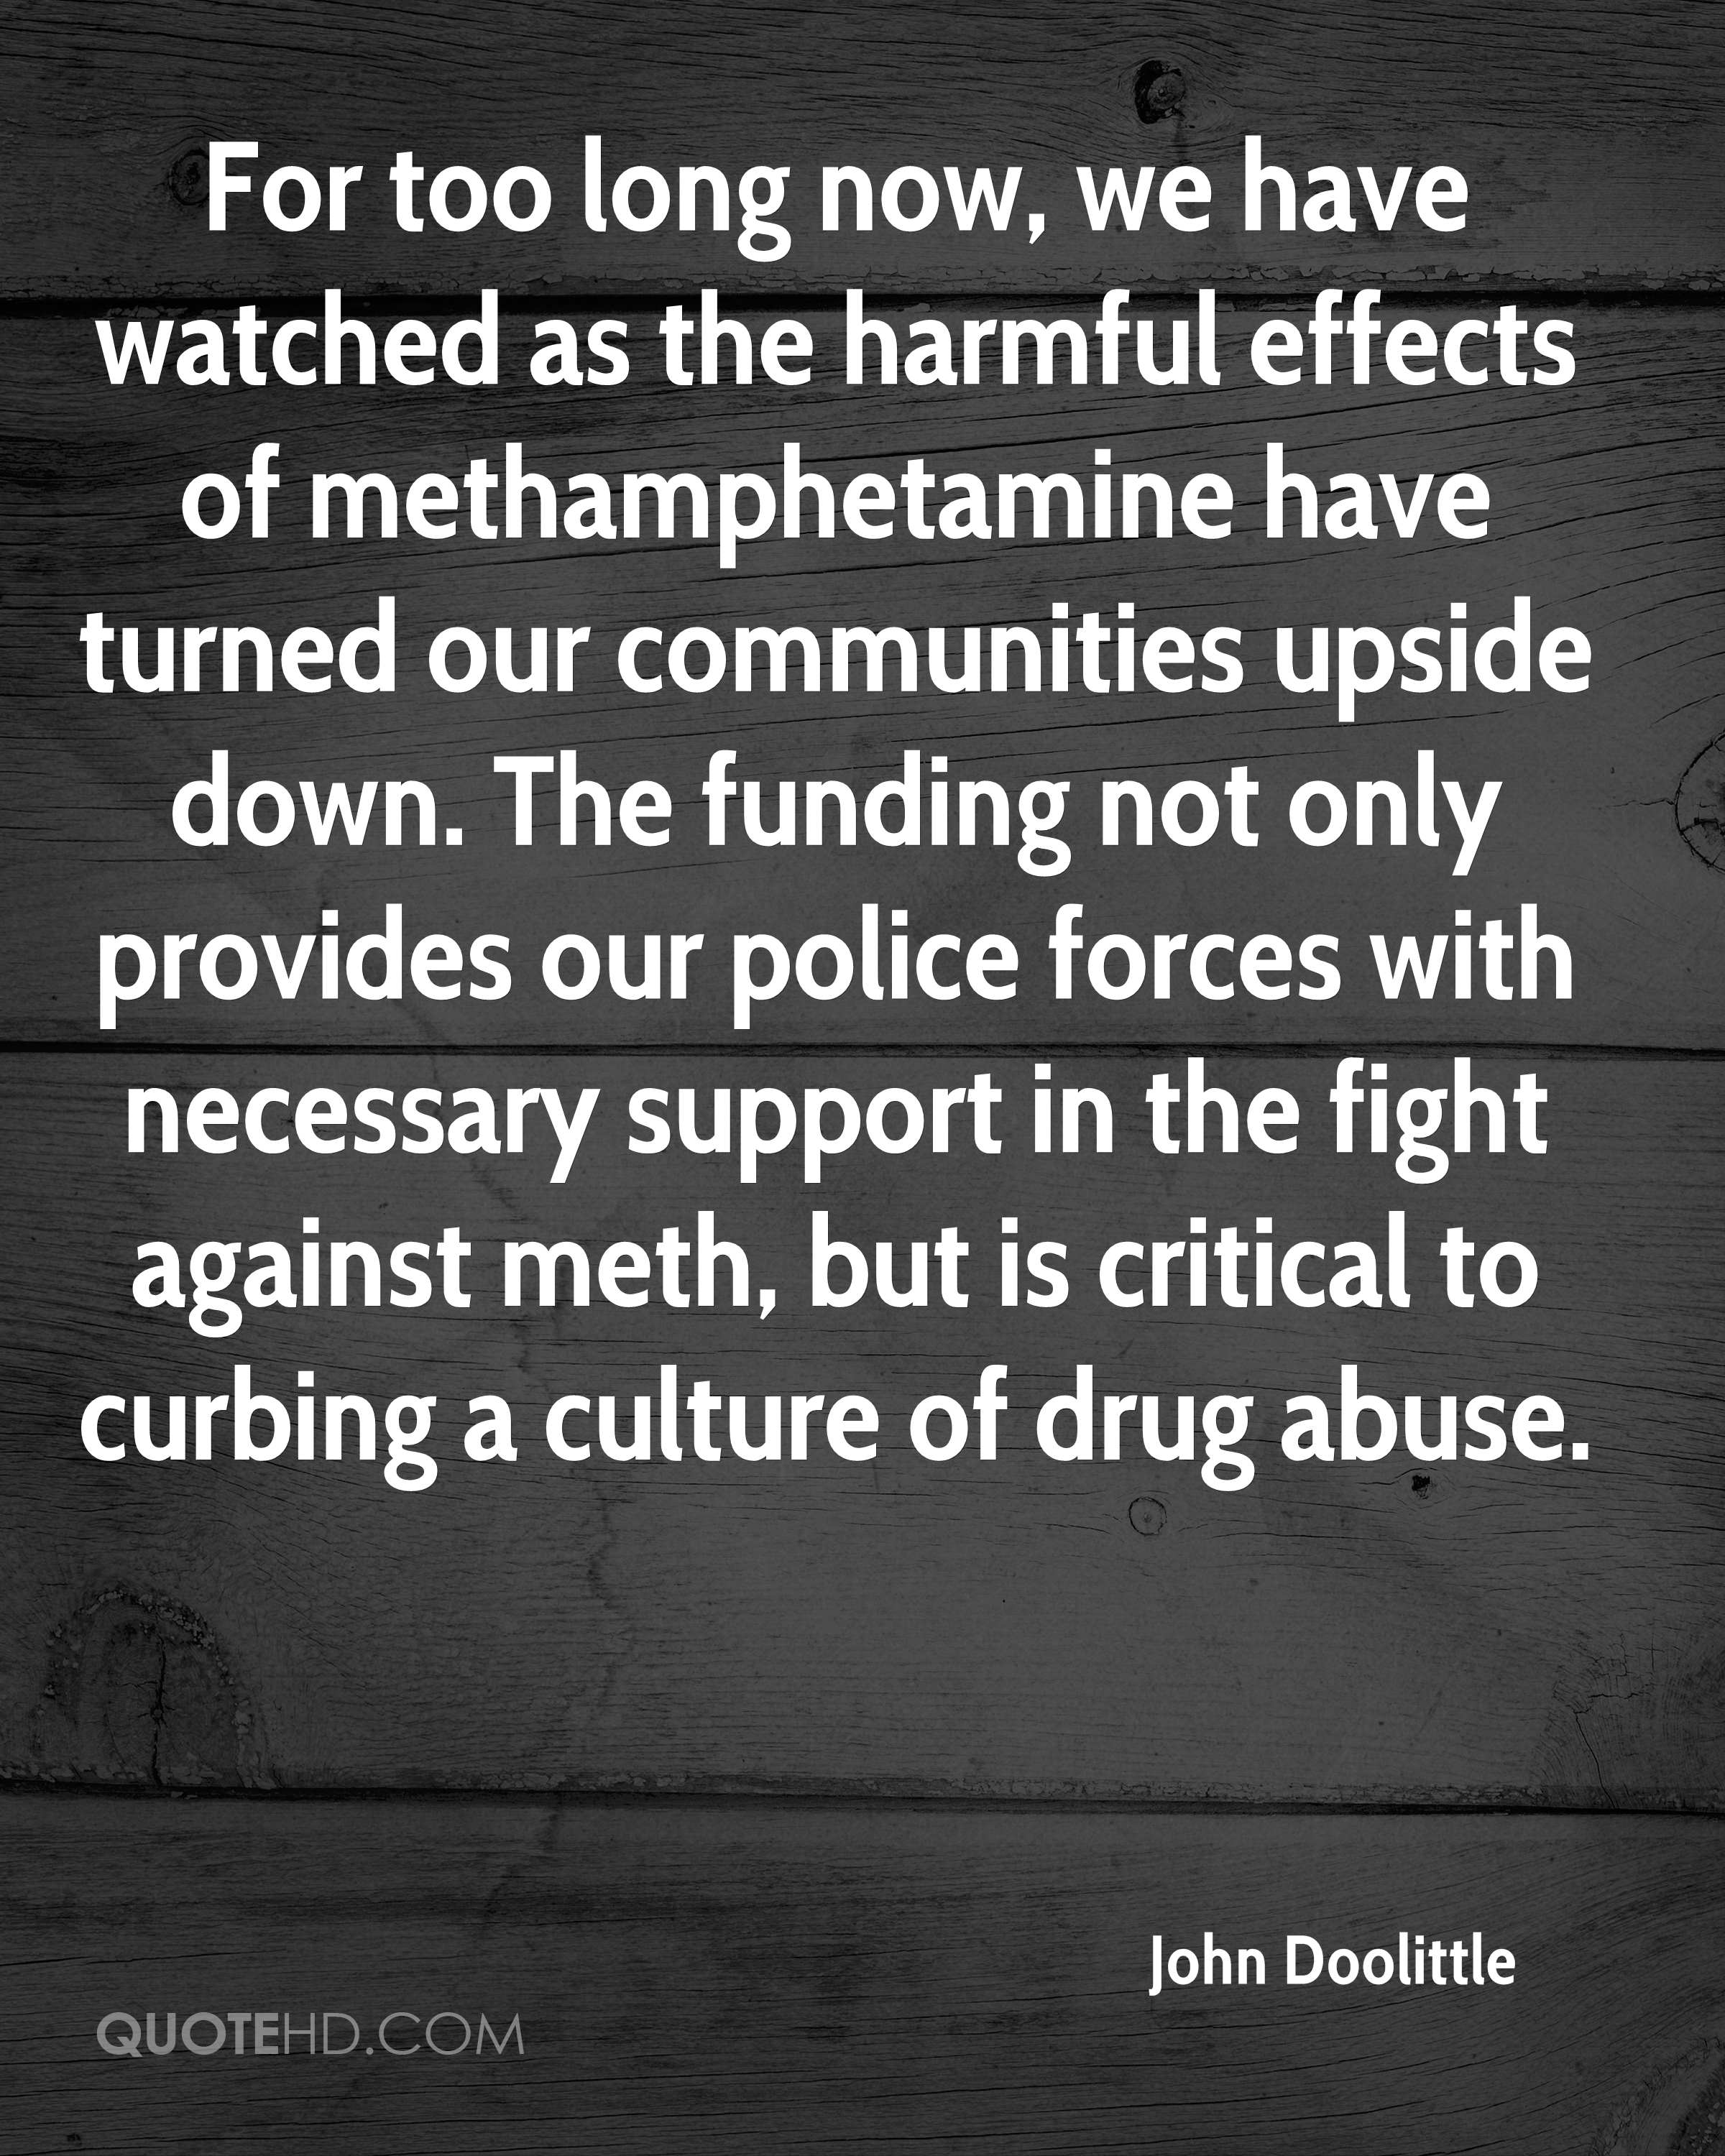 For too long now, we have watched as the harmful effects of methamphetamine have turned our communities upside down. The funding not only provides our police forces with necessary support in the fight against meth, but is critical to curbing a culture of drug abuse.